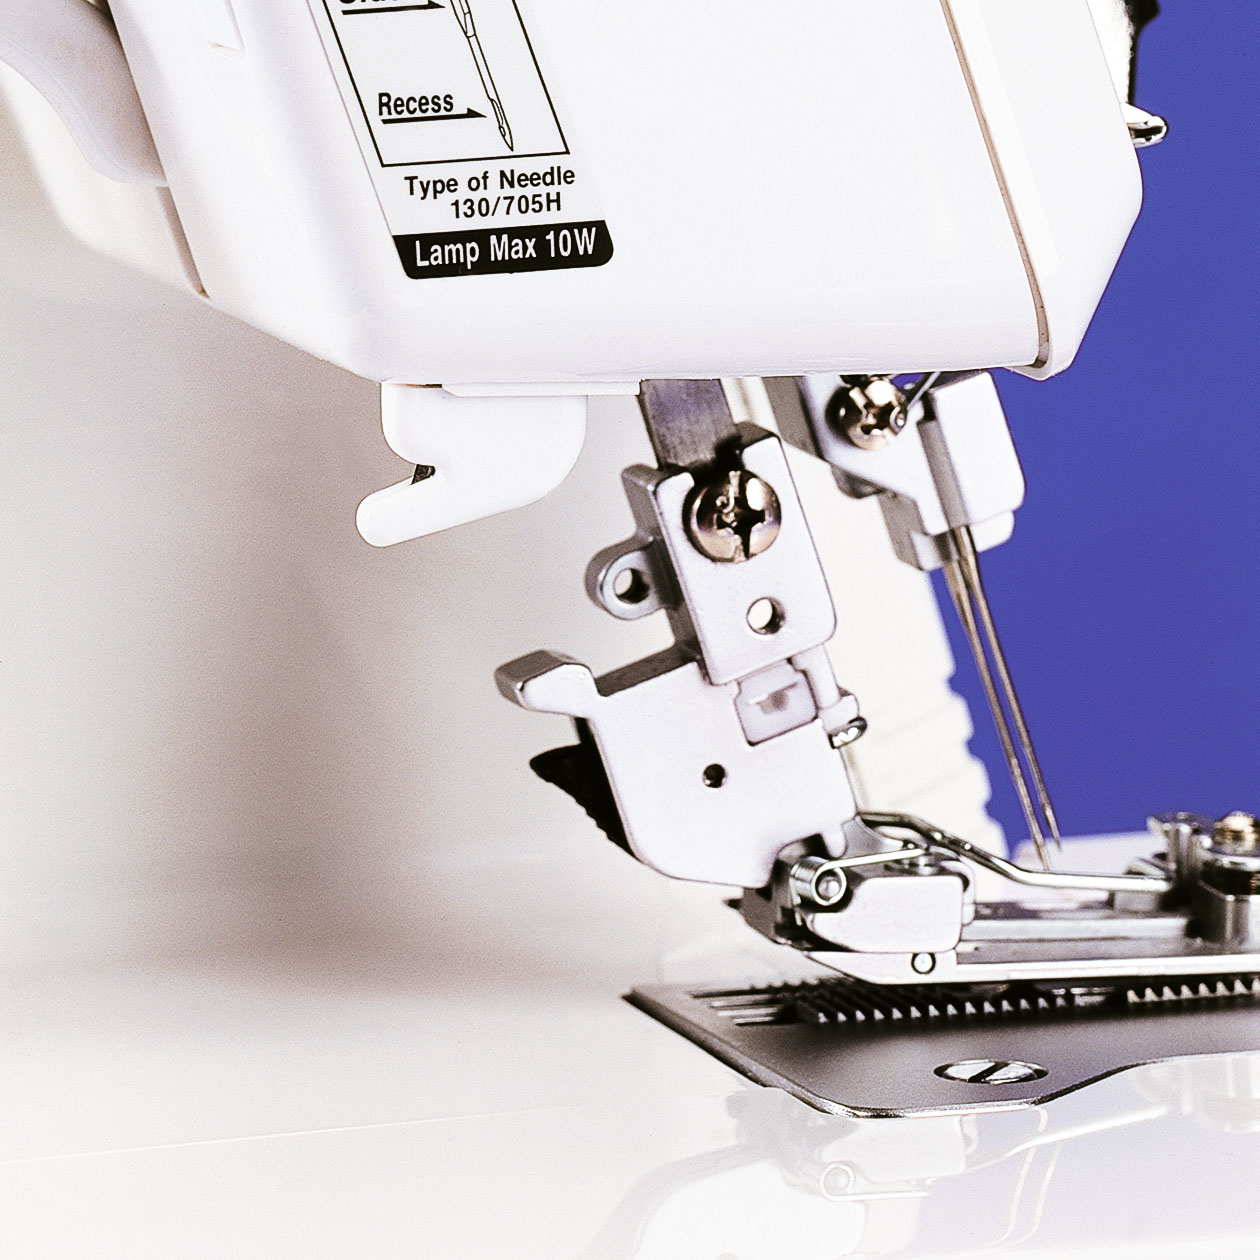 Adjustable sewing speed